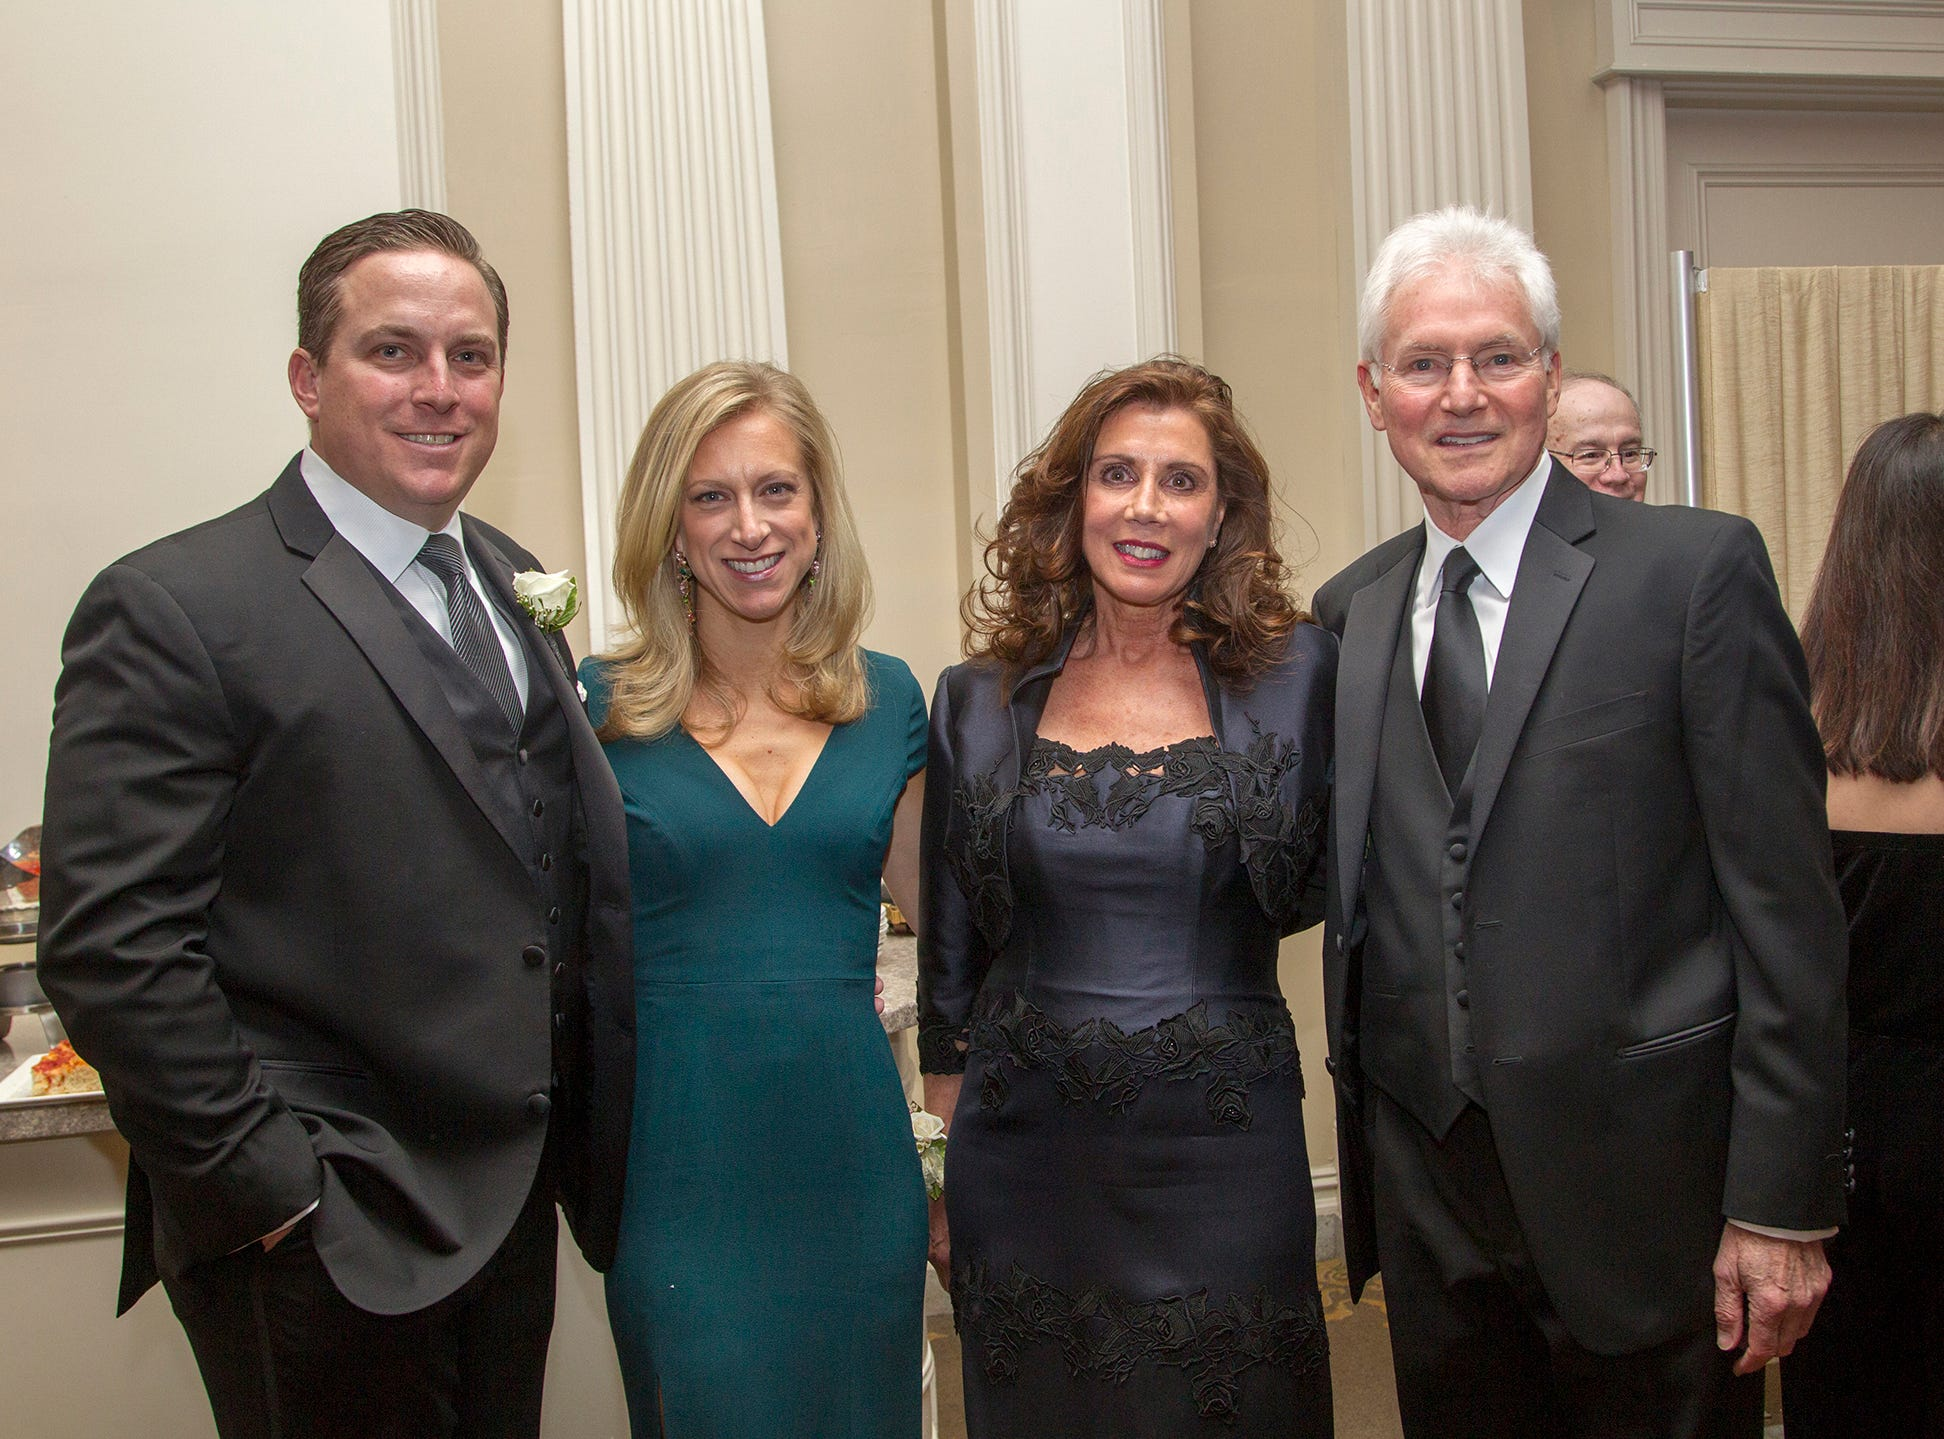 Peter and Lauren Seminara, Debra Perry, James Santomier. Ramapo College held its 37th Annual Distinguished Citizens Dinner at Rockleigh Country Club. 03/02/2019